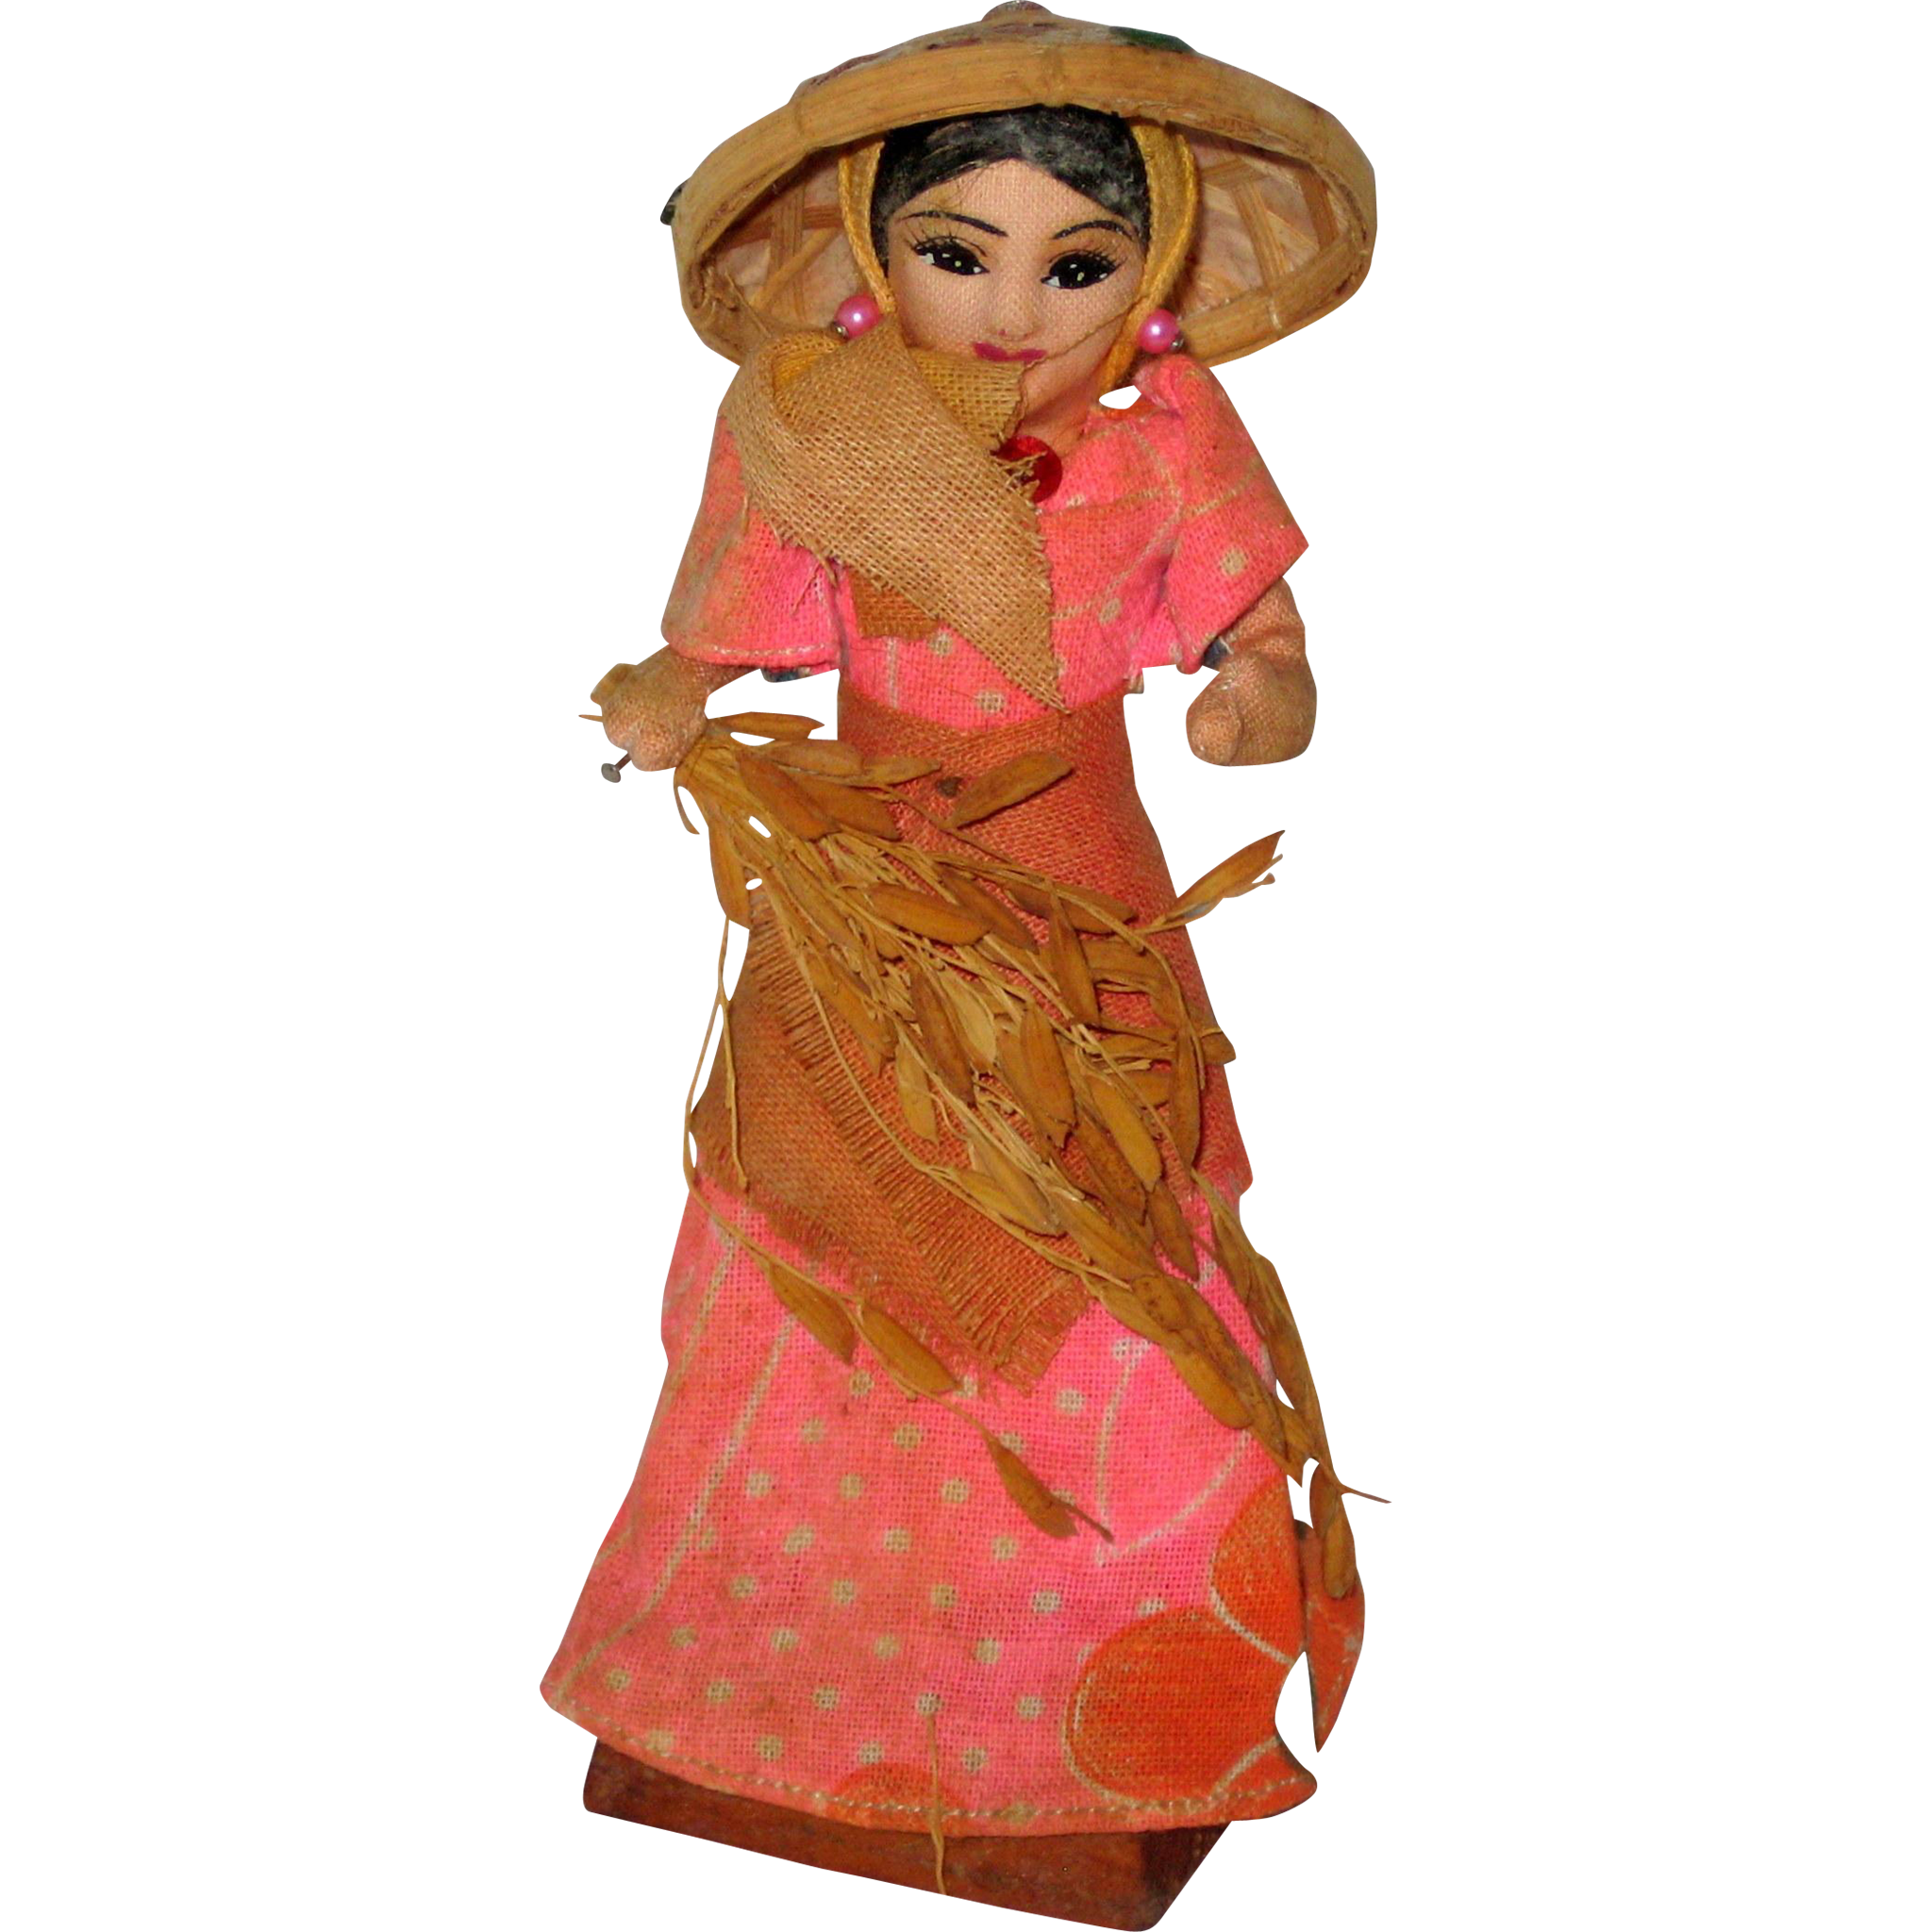 Little Rice Farmer Lady Doll from the Philipines - 1977